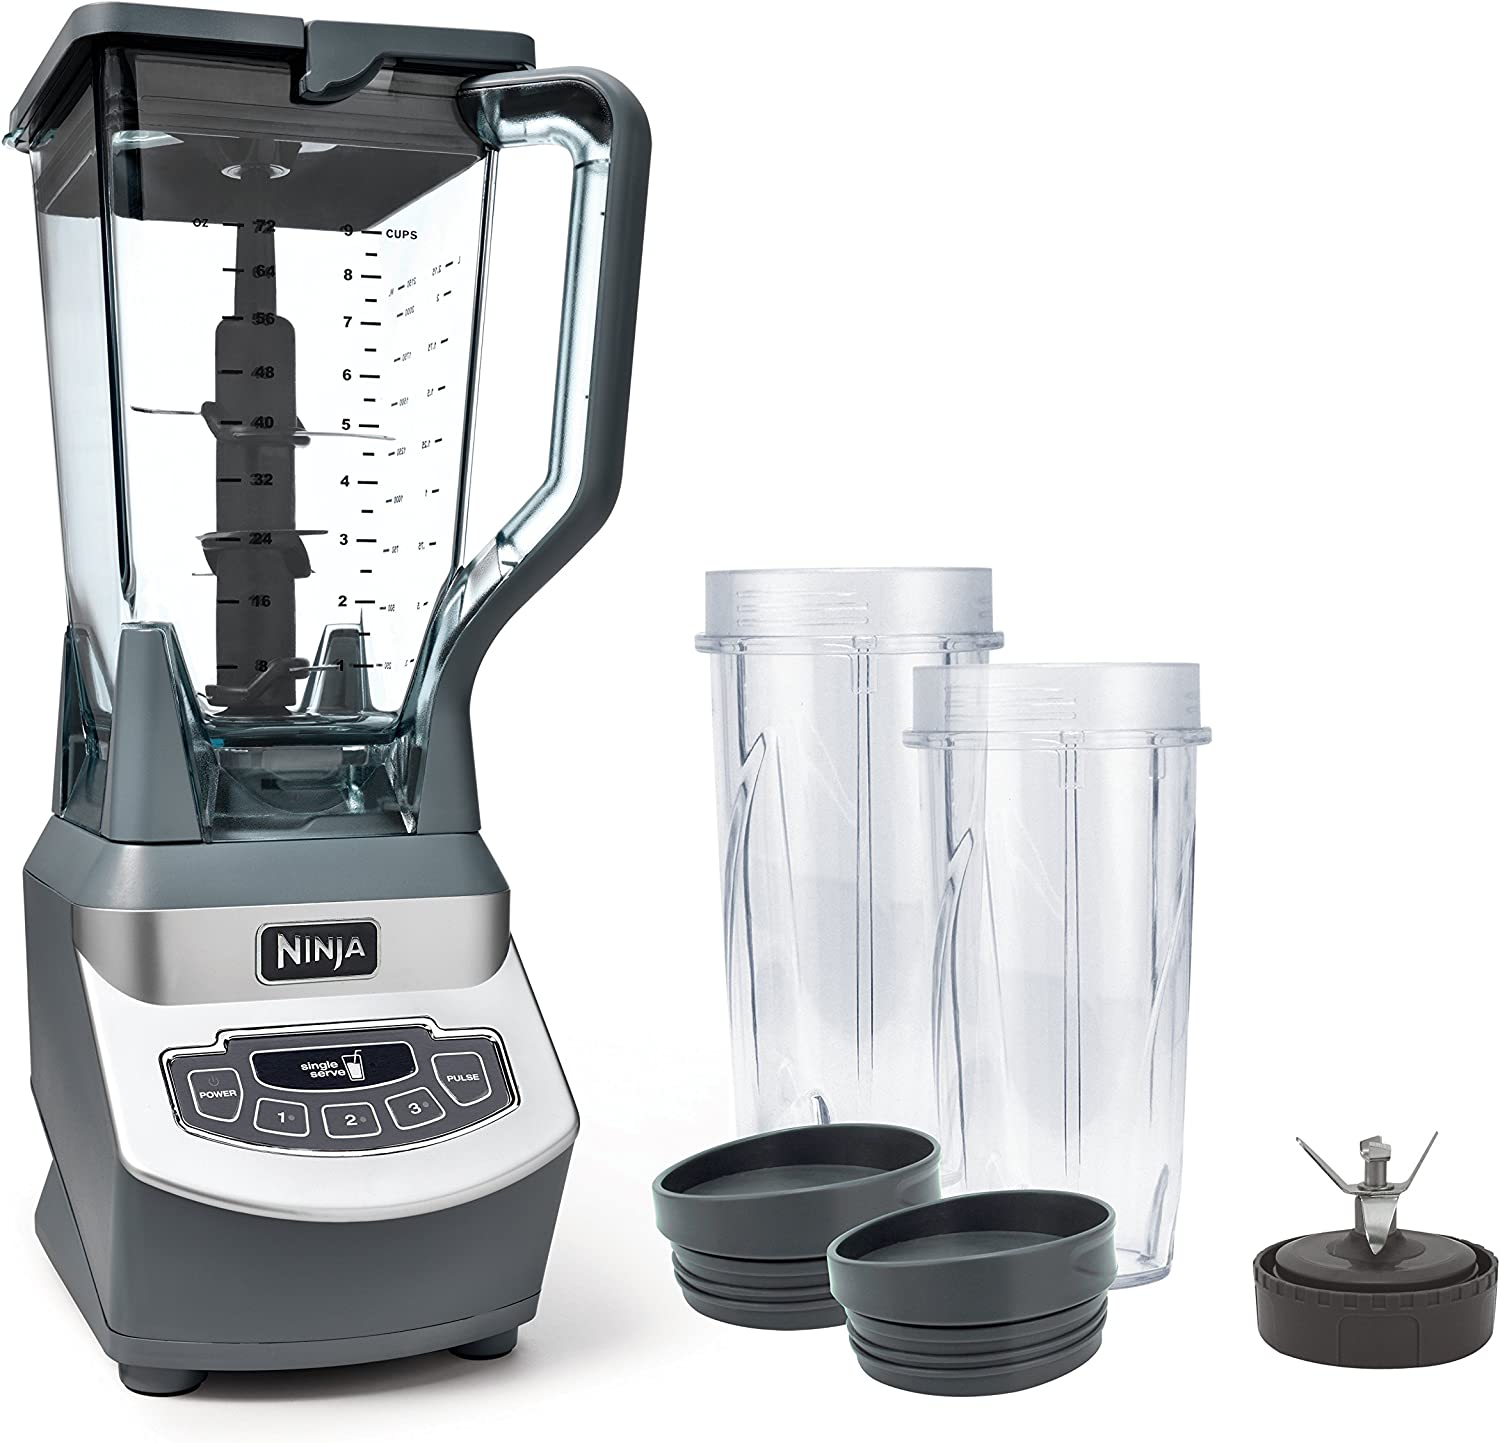 Ninja Professional Countertop Blender with 1100-Watt Base, 72 Oz Total Crushing Pitcher and (2) 16 Oz Cups for Frozen Drinks and Smoothies